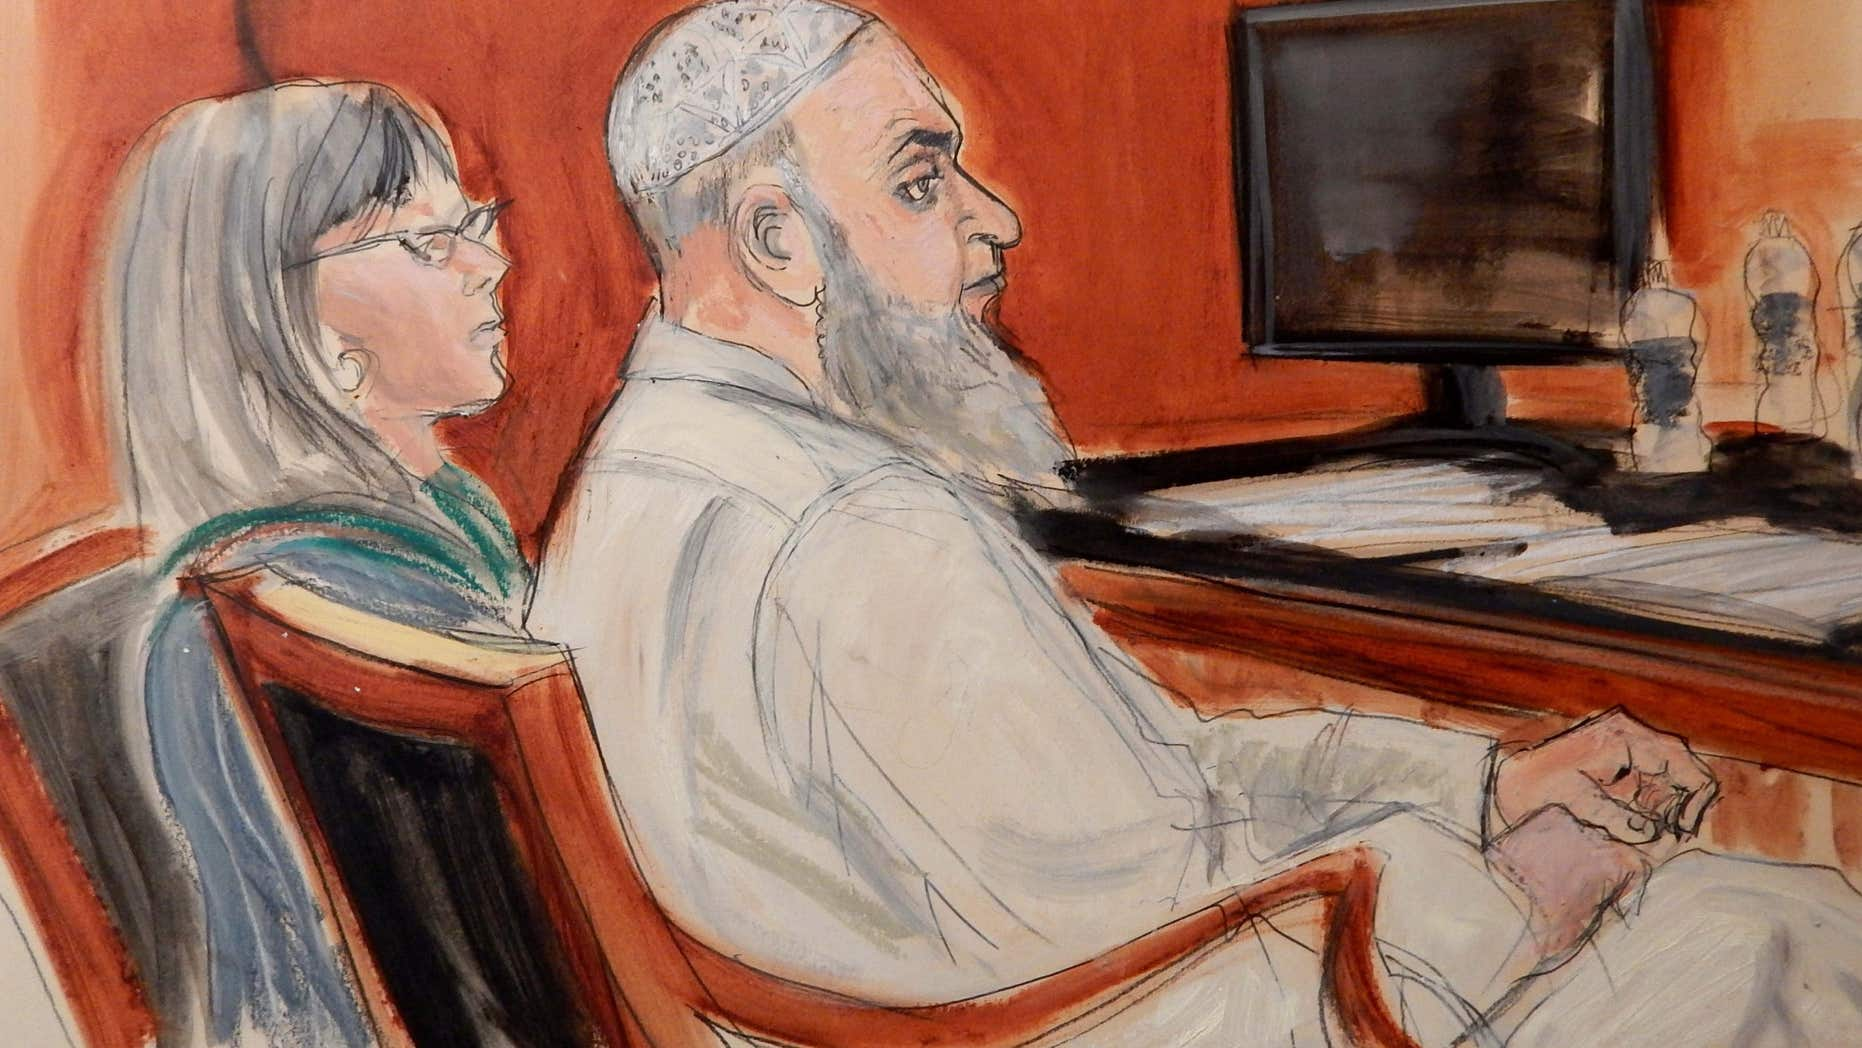 Jan. 20, 2015: In this file courtroom sketch, Khaled al-Fawwaz, right, a defendant in the 1998 bombings of the U.S. embassies in Kenya and Tanzania that killed 224 people